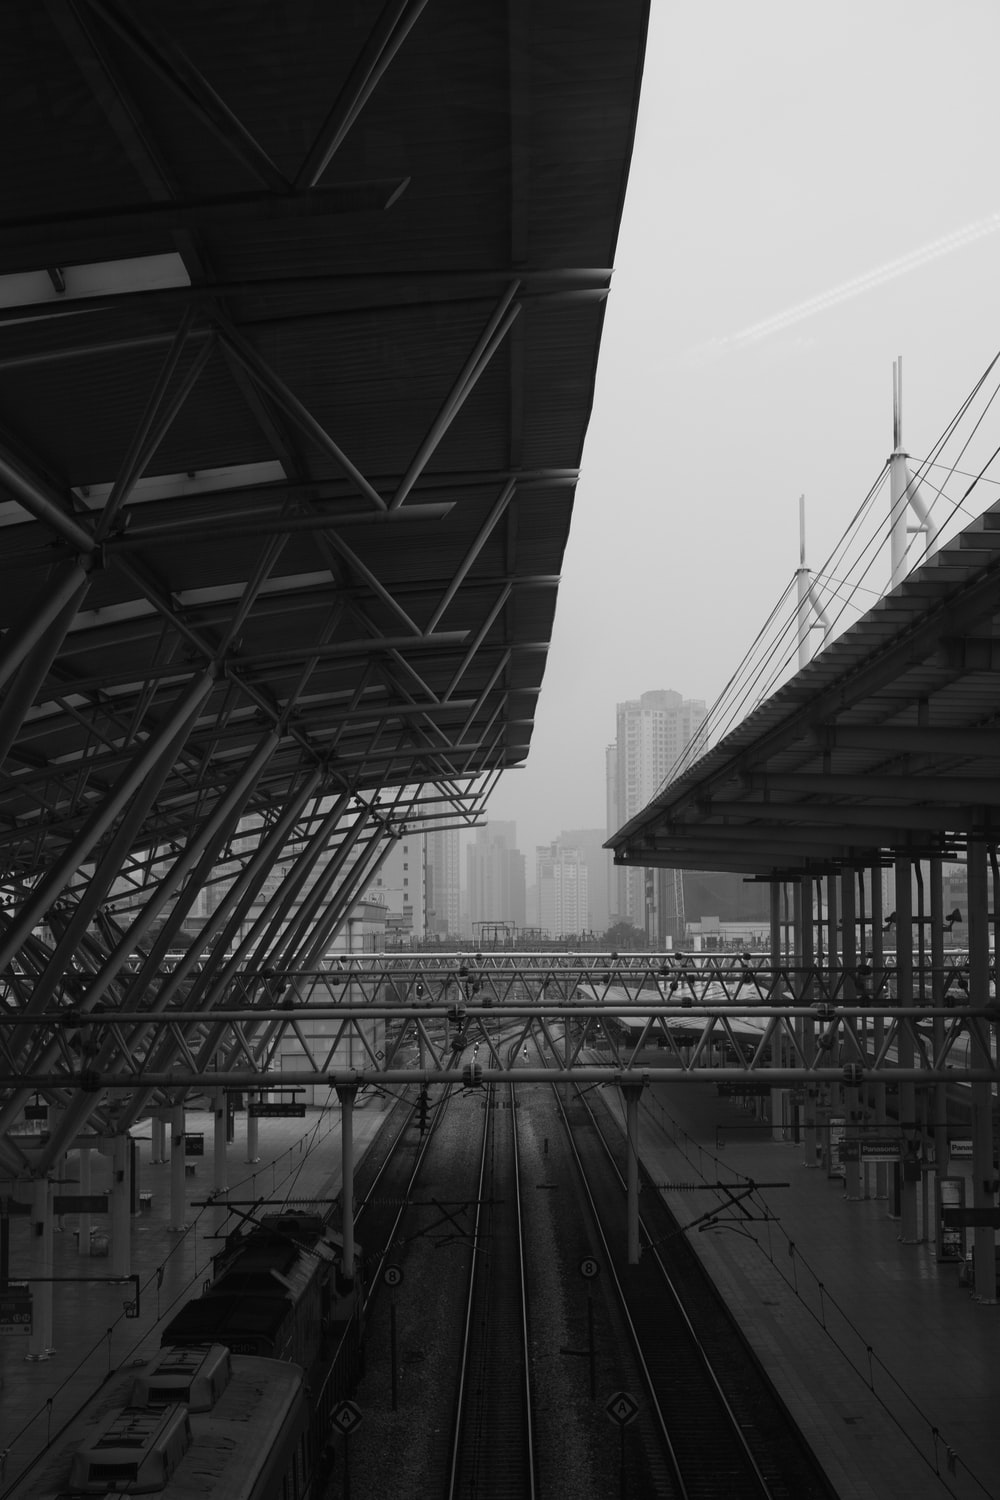 grayscale photography of metal trusses